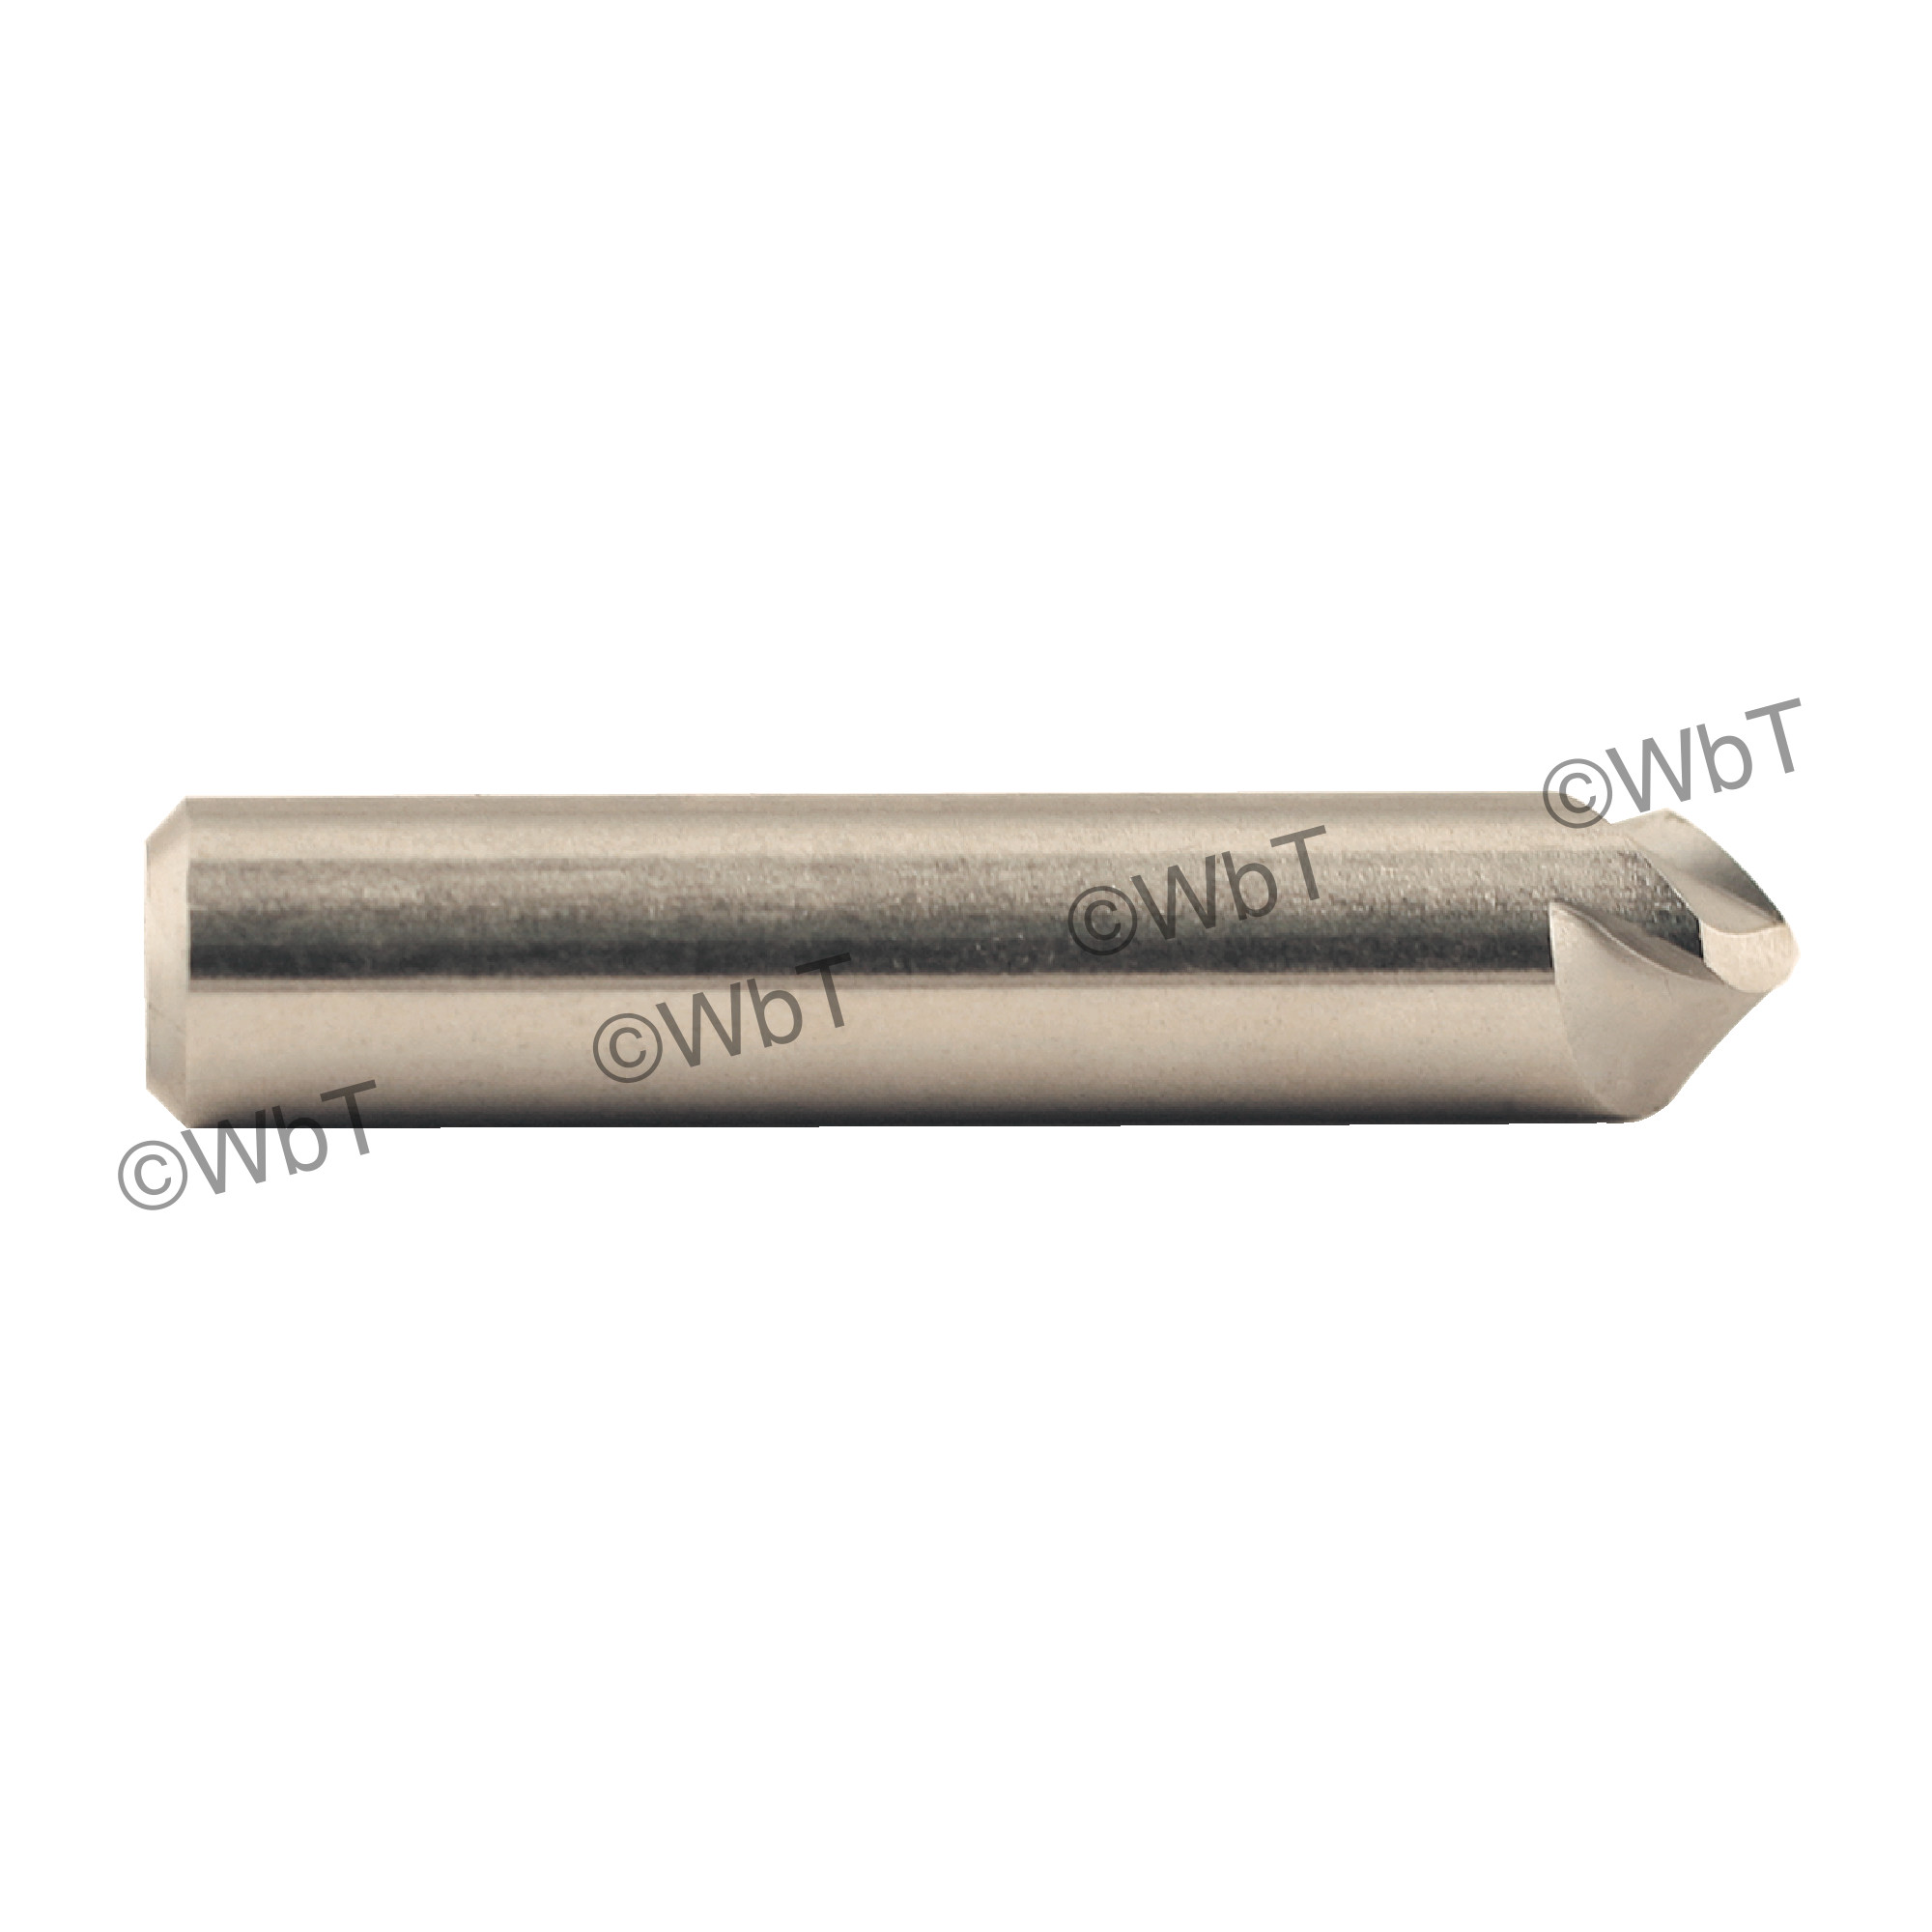 3 Flute High Speed Steel Aircraft Style Countersinks